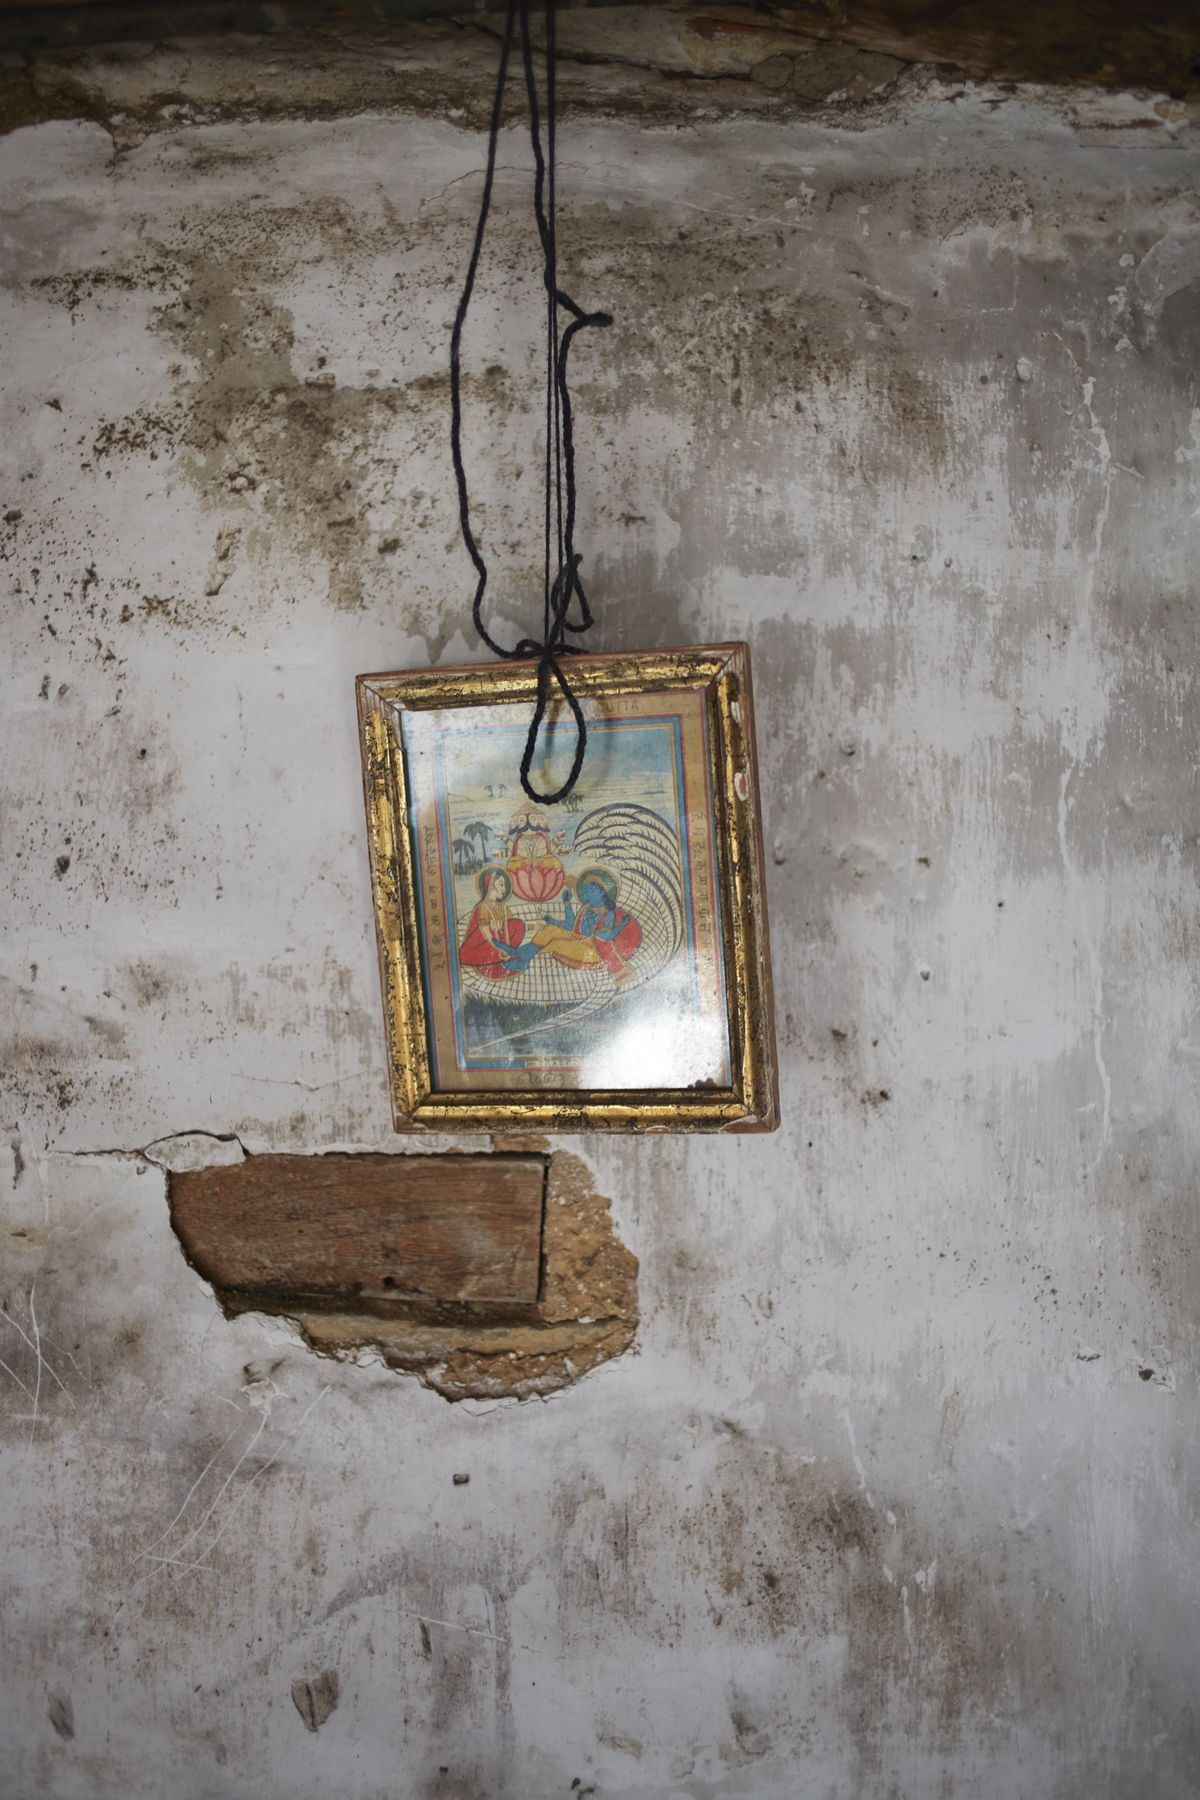 A detail shot of rough plaster, with some of it chipped away and showing the lathe. A picture hangs on the wall.